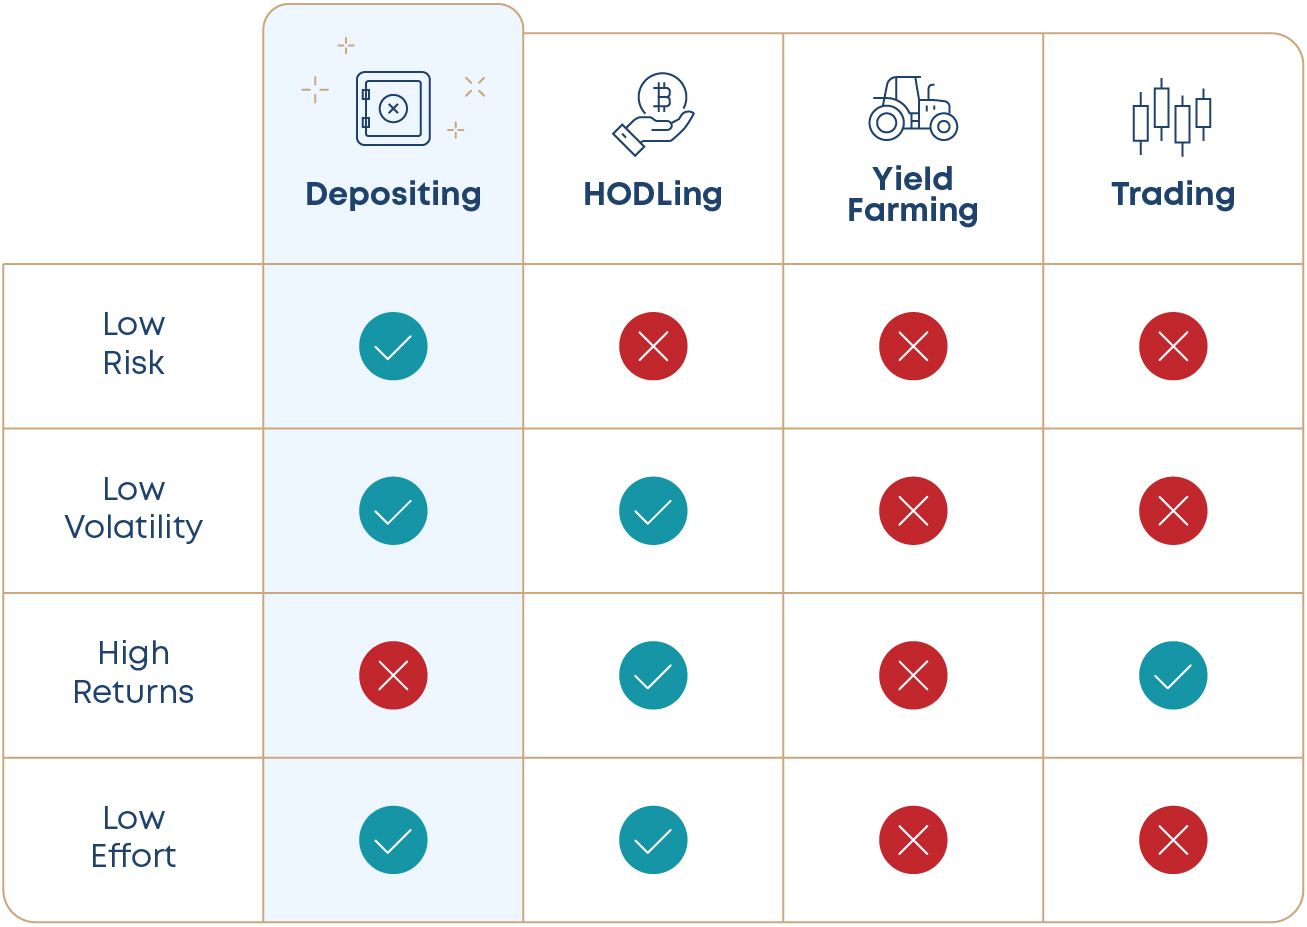 Table 1. Comparison between the 'Depositing', 'HODLing', 'Yield Farming' and 'Trading' strategies